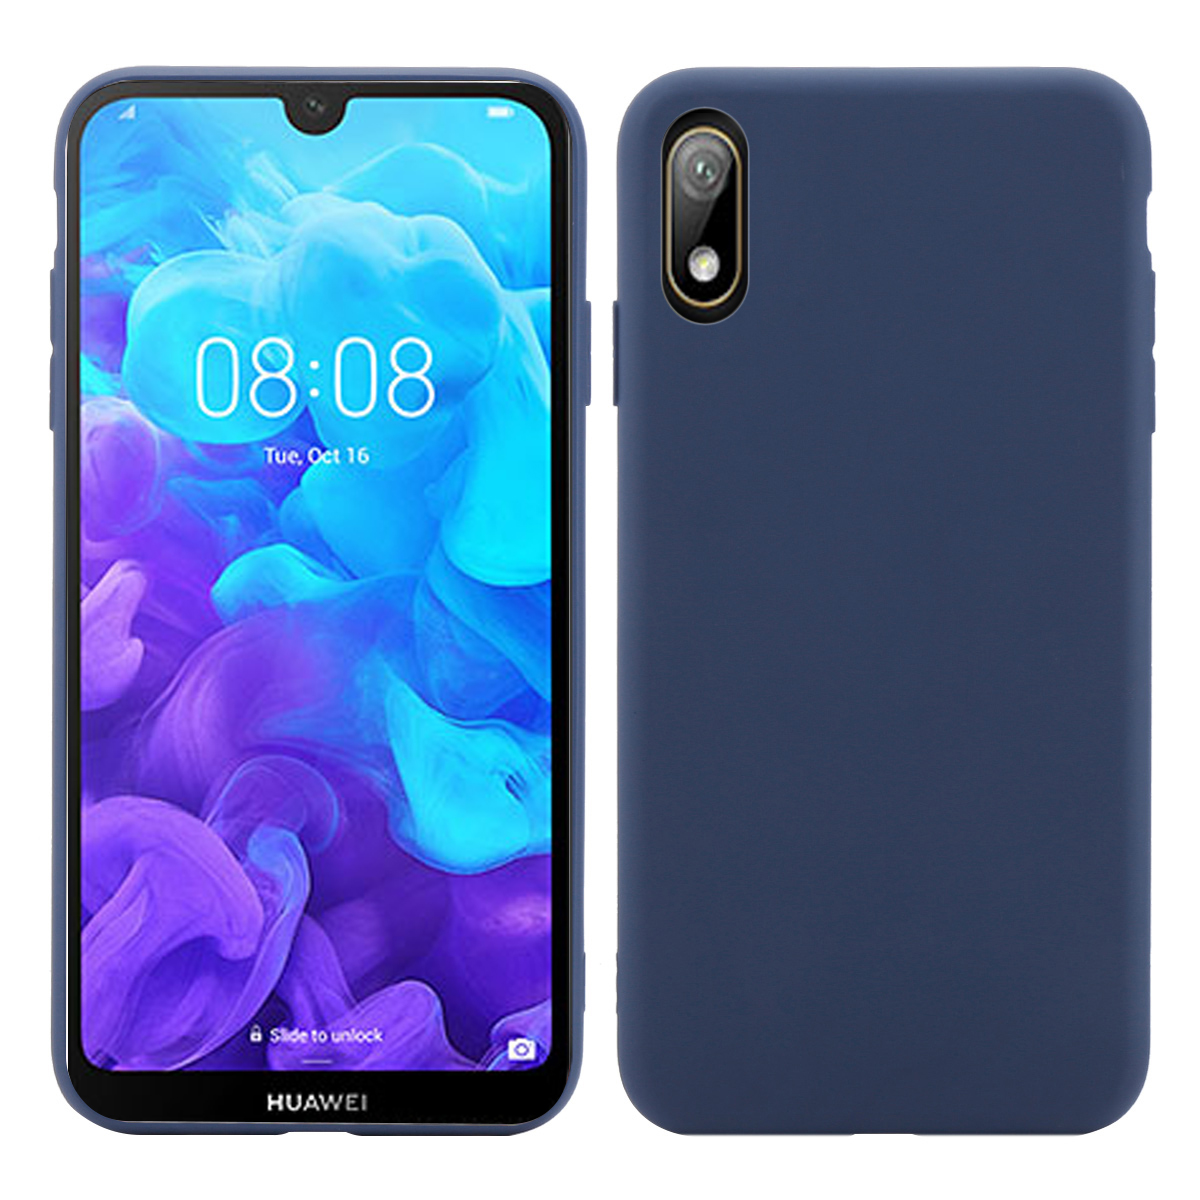 For Huawei Y5 2019 Y6 2019 Case Soft Silicone Slim Candy Color Matte TPU Cover For Huawei Y6 Pro 2019 Y9 2019 Case Shockproof